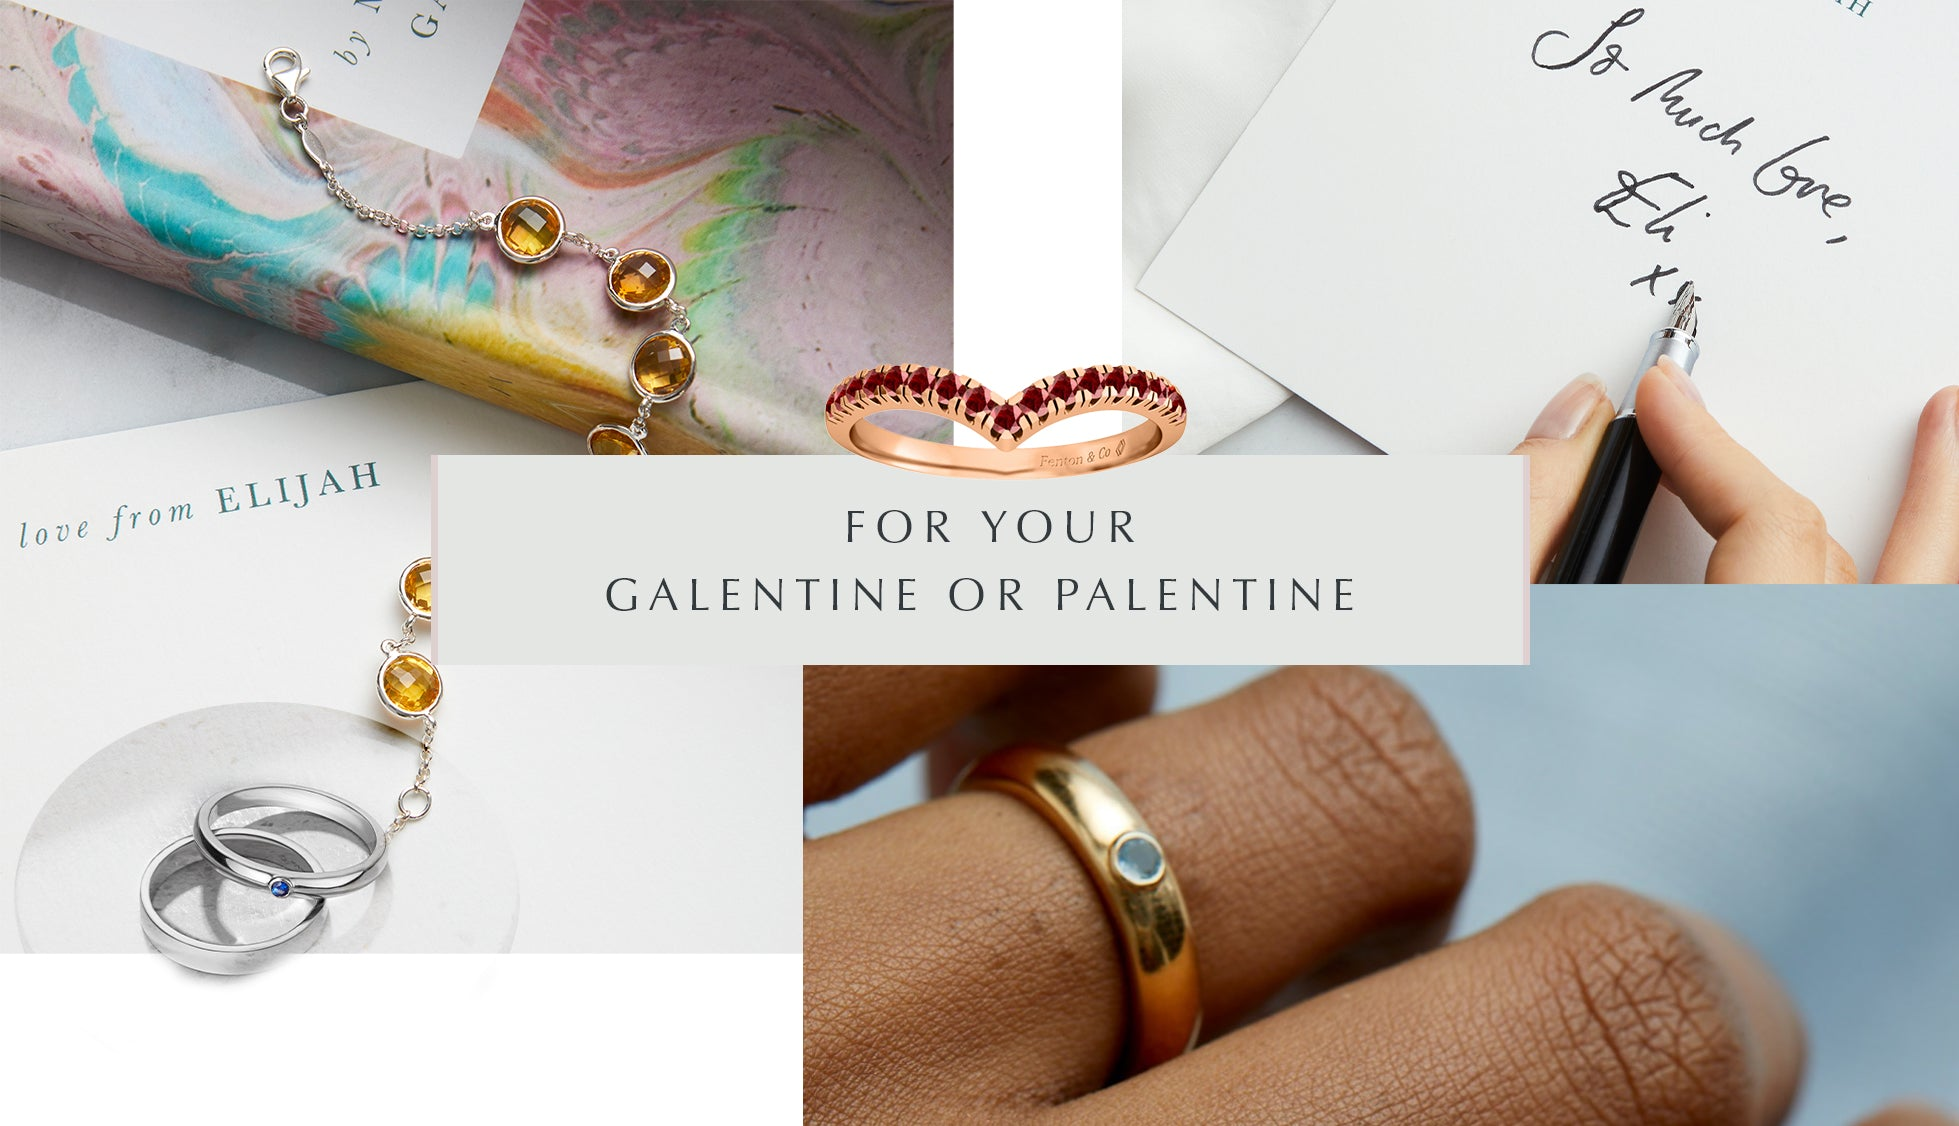 Galentines Gift Guide from Fenton, collage of images, including emerald, aquamarine and garnet rings.